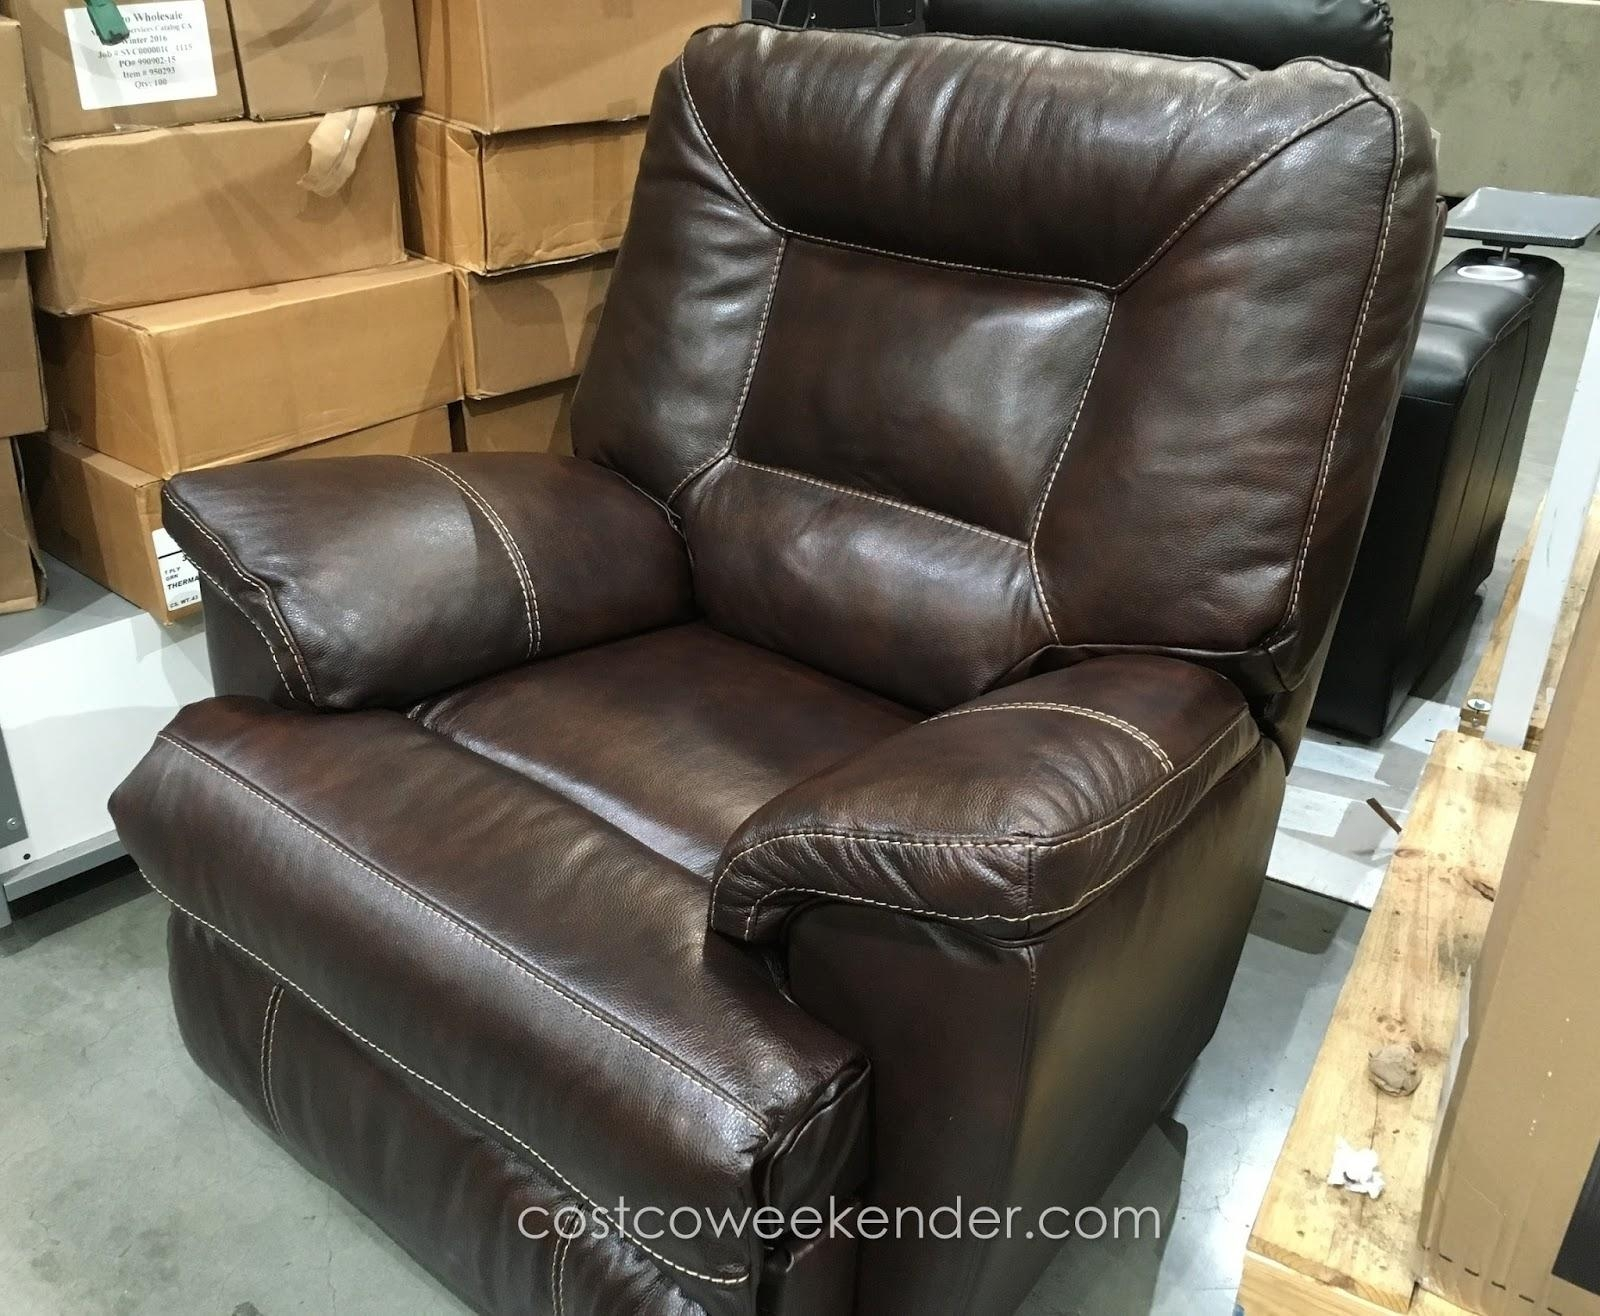 Furniture & Sofa: Enjoy Your Holiday With Costco Home Theater Inside Berkline Leather Sofas (Image 9 of 20)